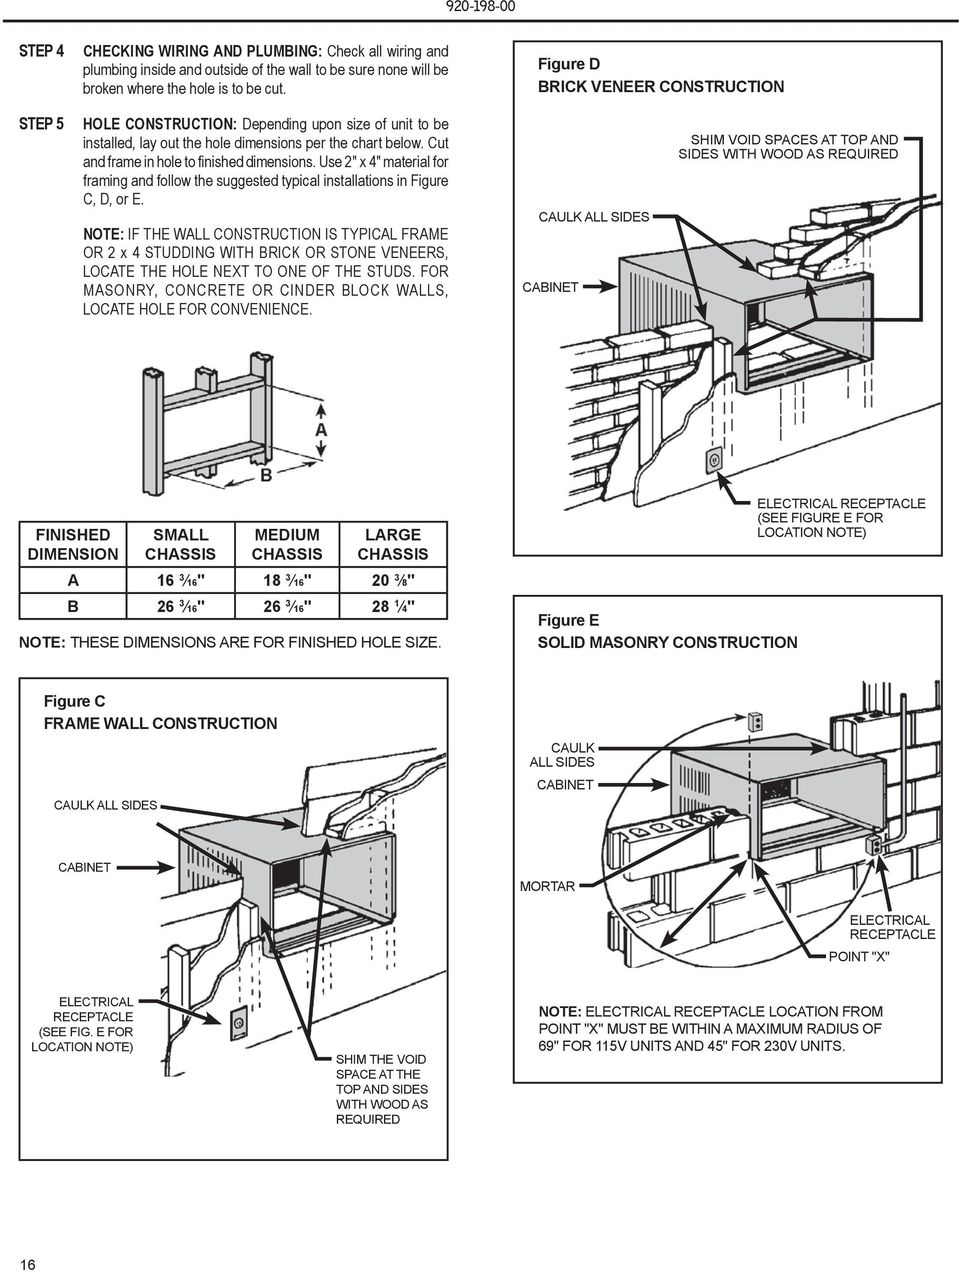 "Use 2"" x 4"" material for framing and follow the suggested typical installations in Figure C, D, or E."